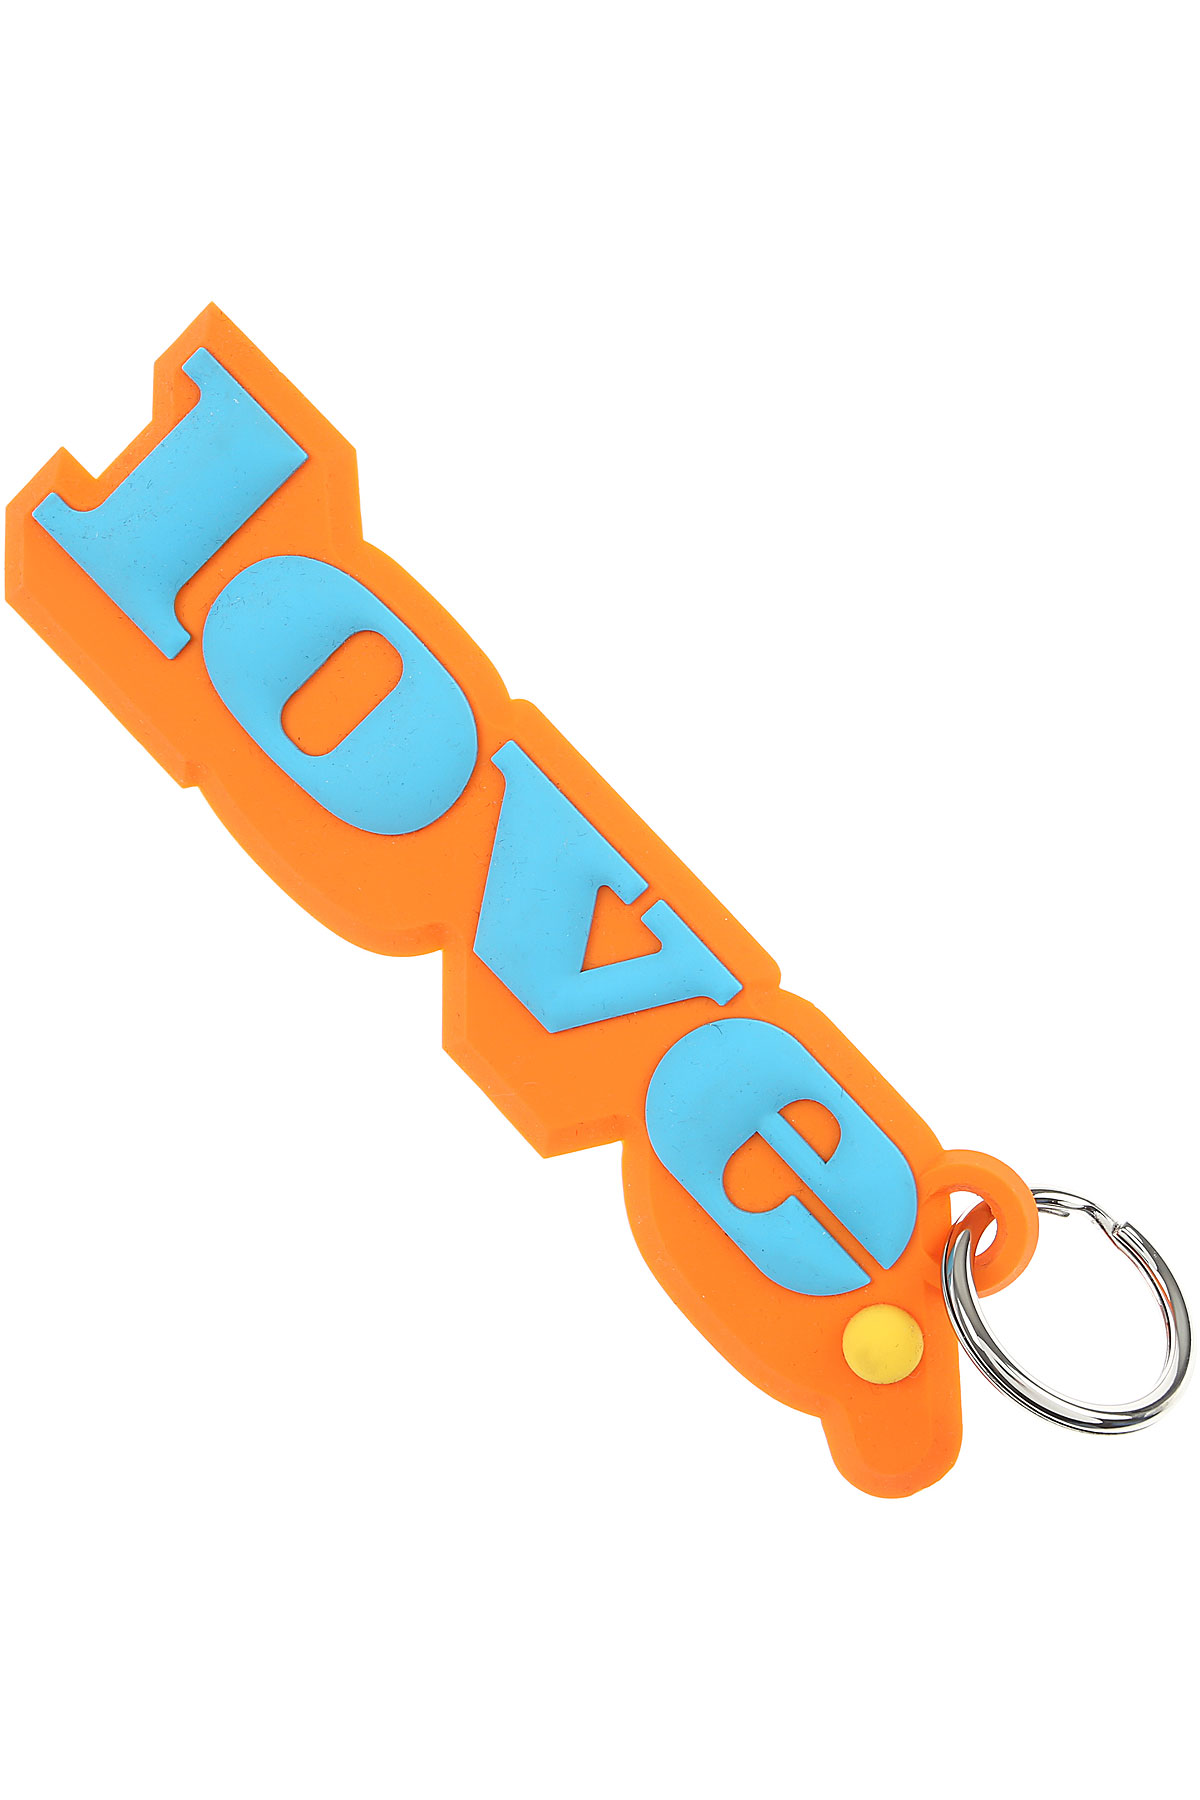 Marc Jacobs Key Chain for Women, Key Ring On Sale in Outlet, Orange, Silicone, 2019